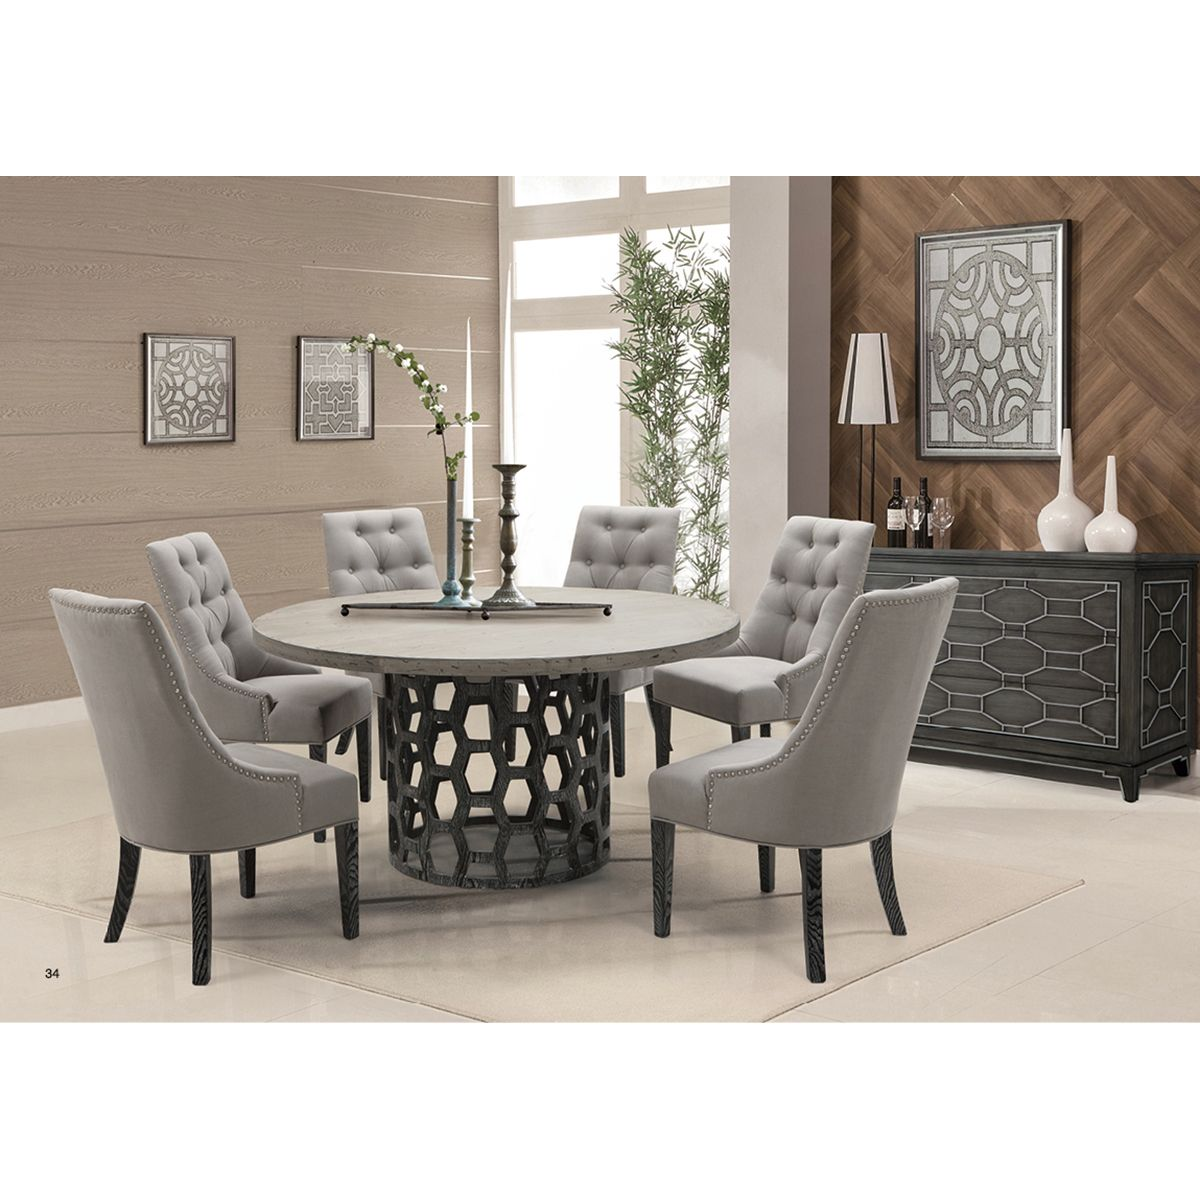 Centennial dining table comedores decoraci n y comedor for Ver comedores modernos